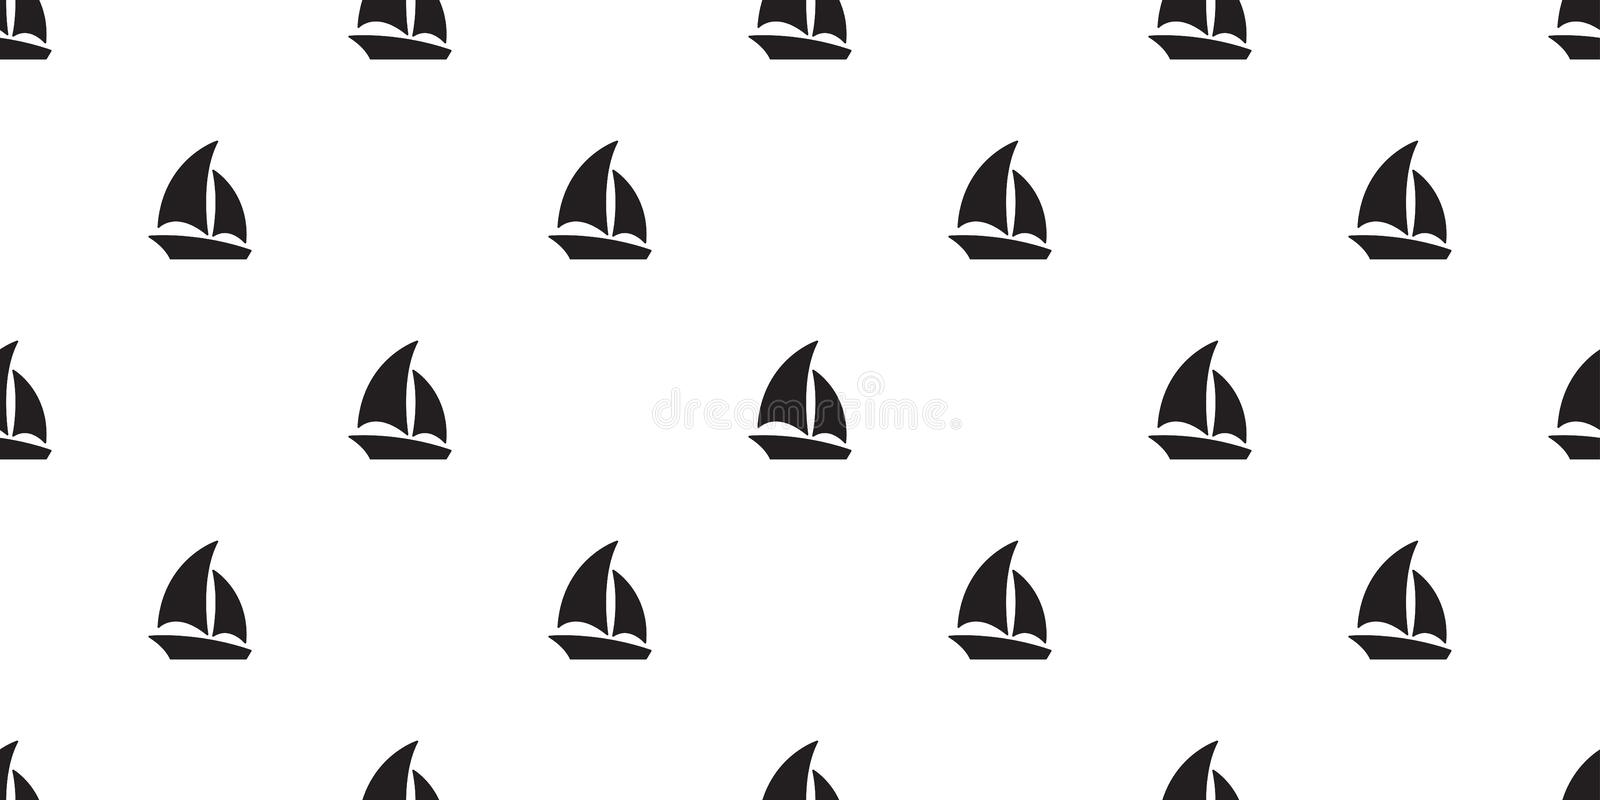 Boat seamless pattern yacht sailboat anchor helm maritime Nautical tropical scarf tile background repeat wallpaper royalty free illustration